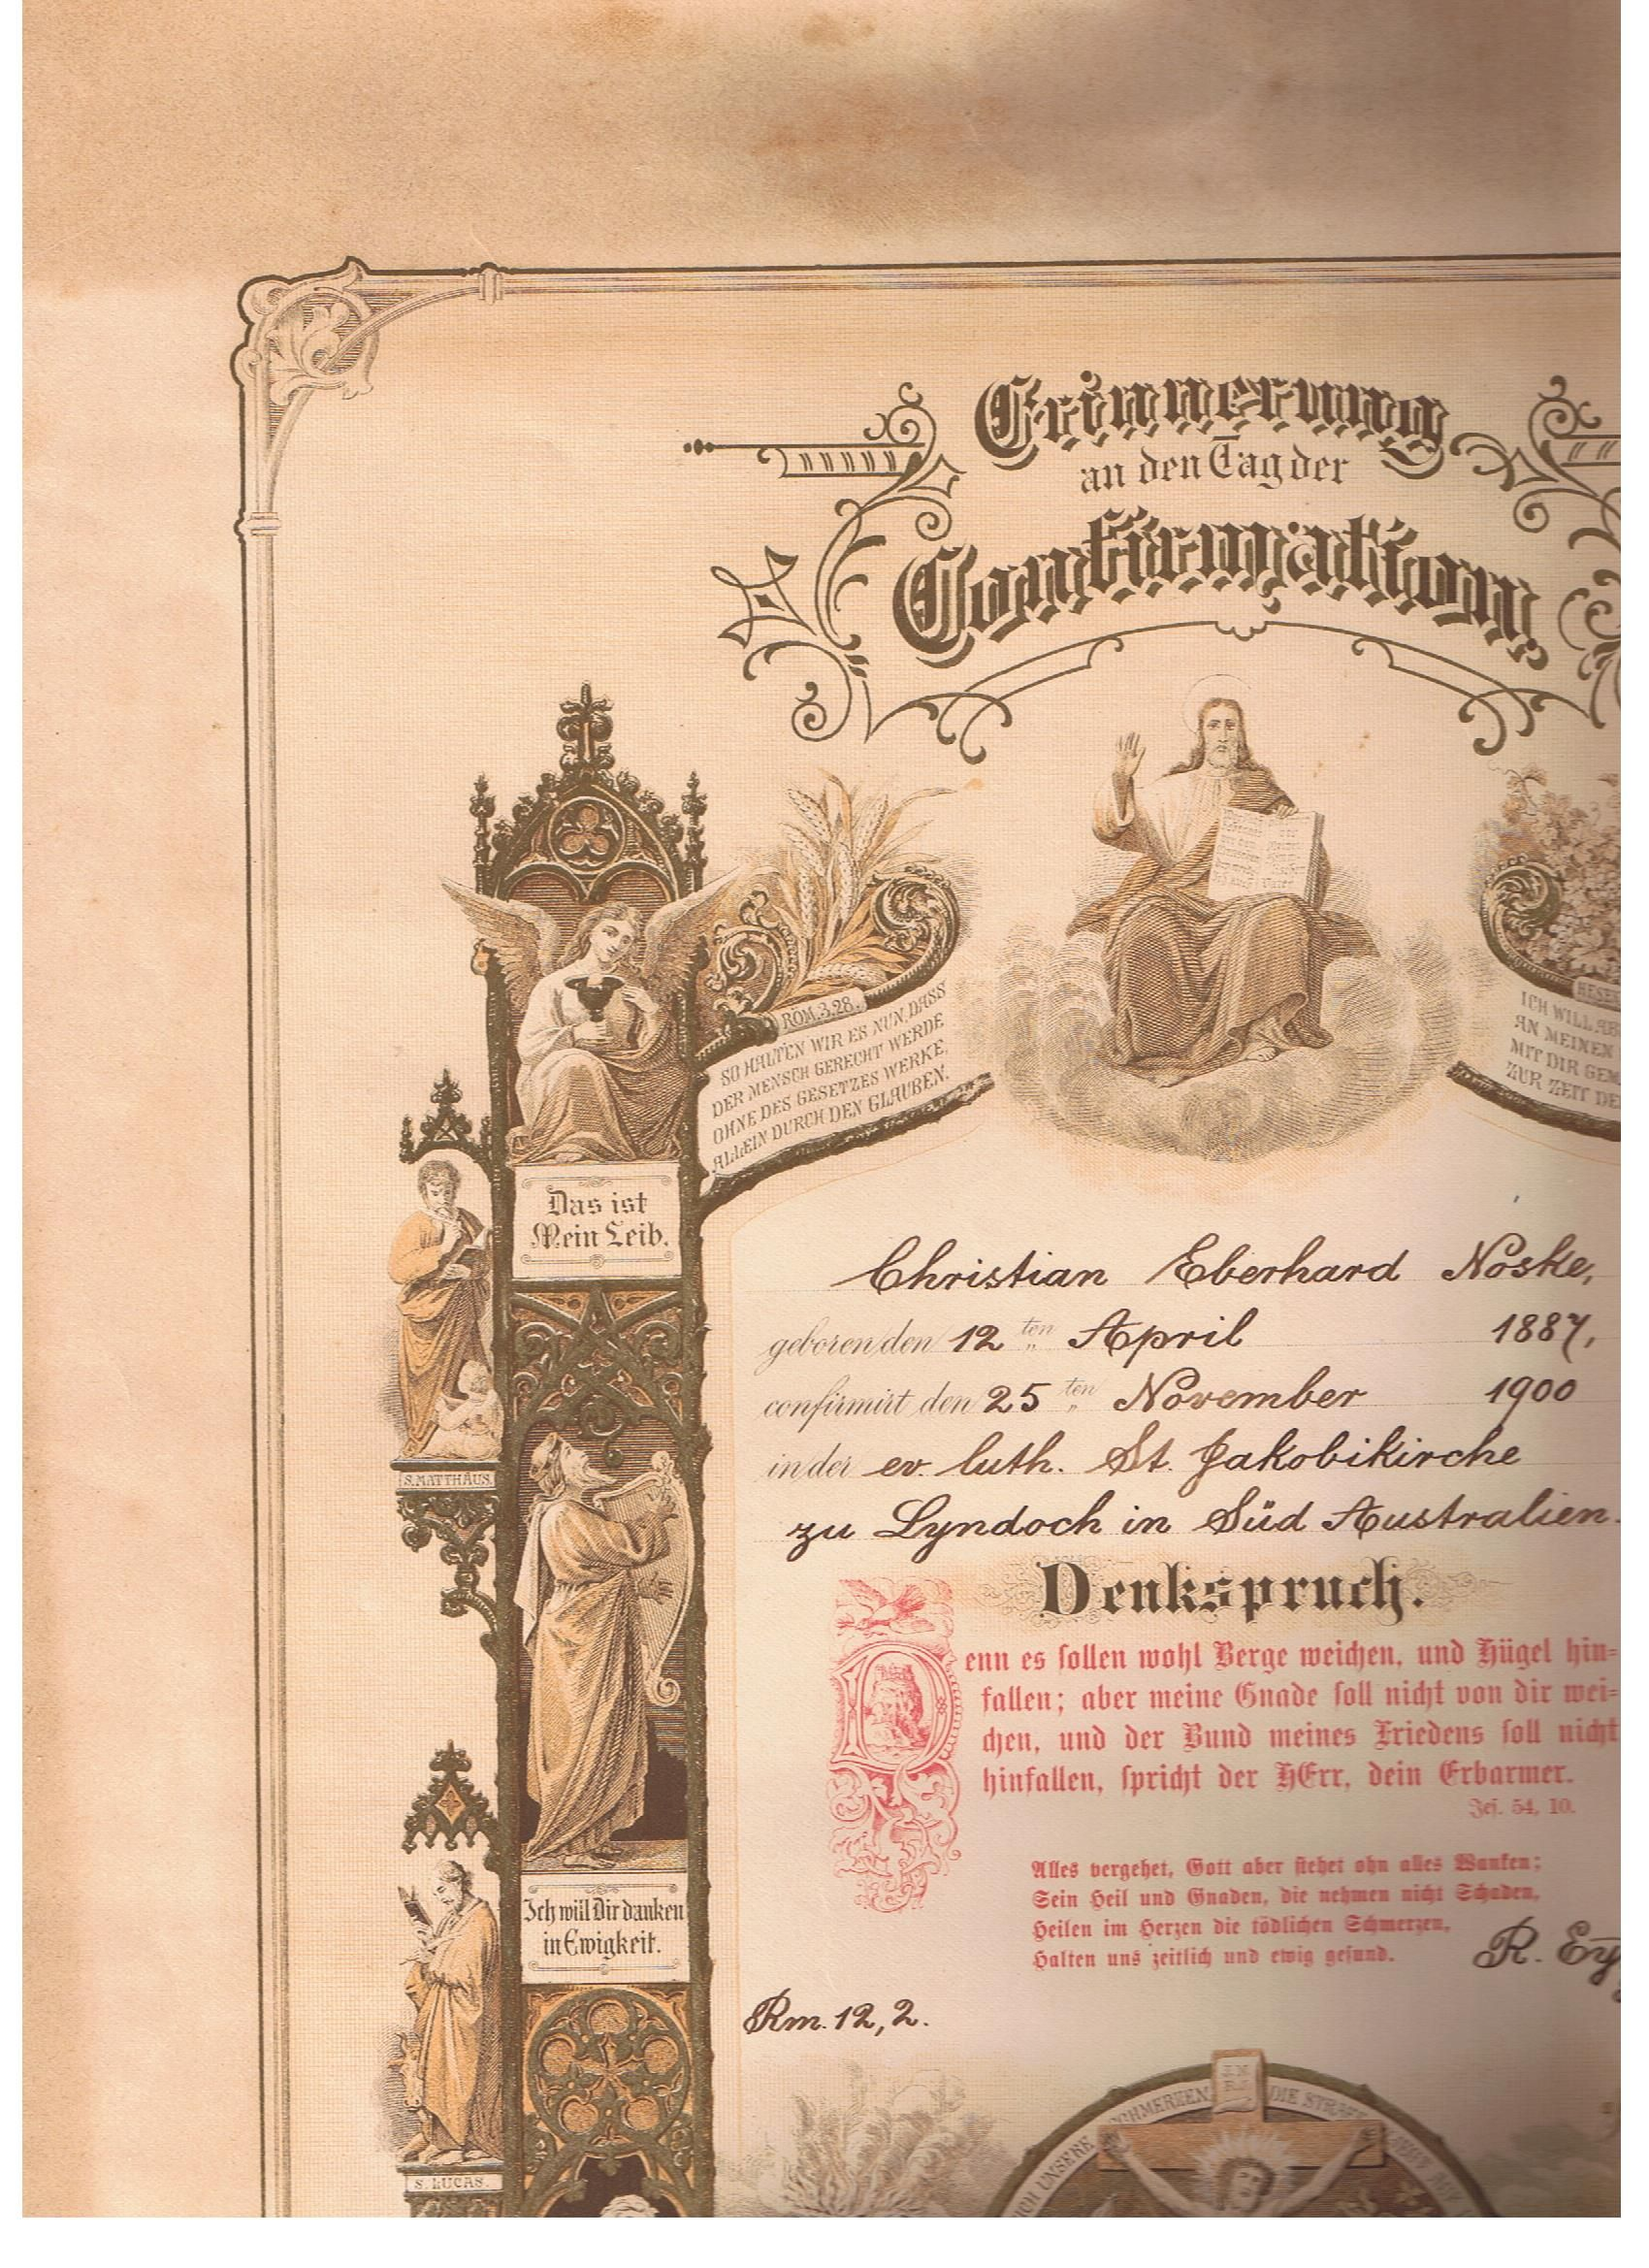 Christian noske part of christening certificate very large scroll christian noske part of christening certificate very large scroll collection from great aunt 1betcityfo Images